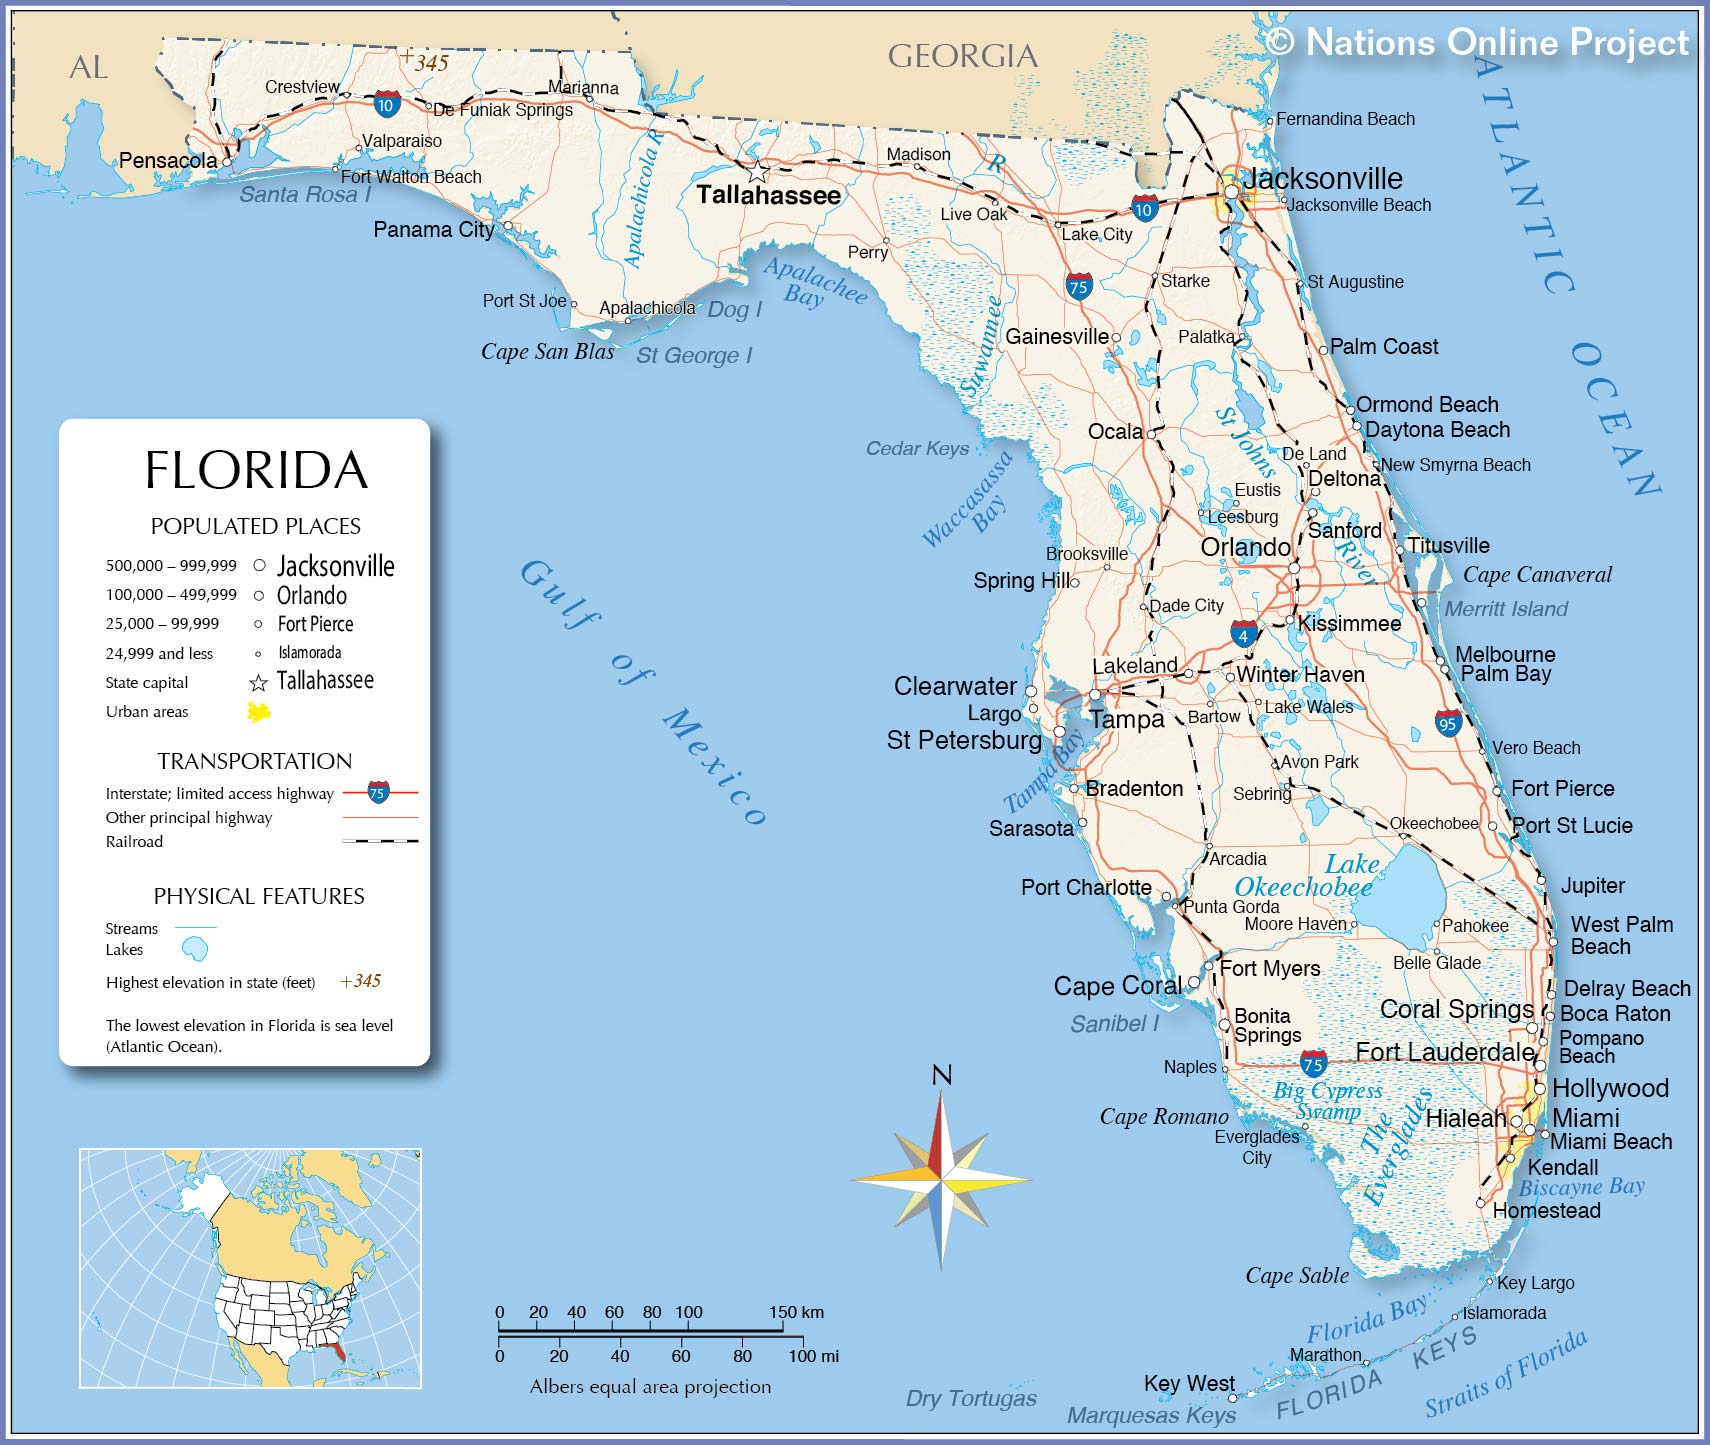 Reference Maps Of Florida, Usa - Nations Online Project - Brooksville Florida Map